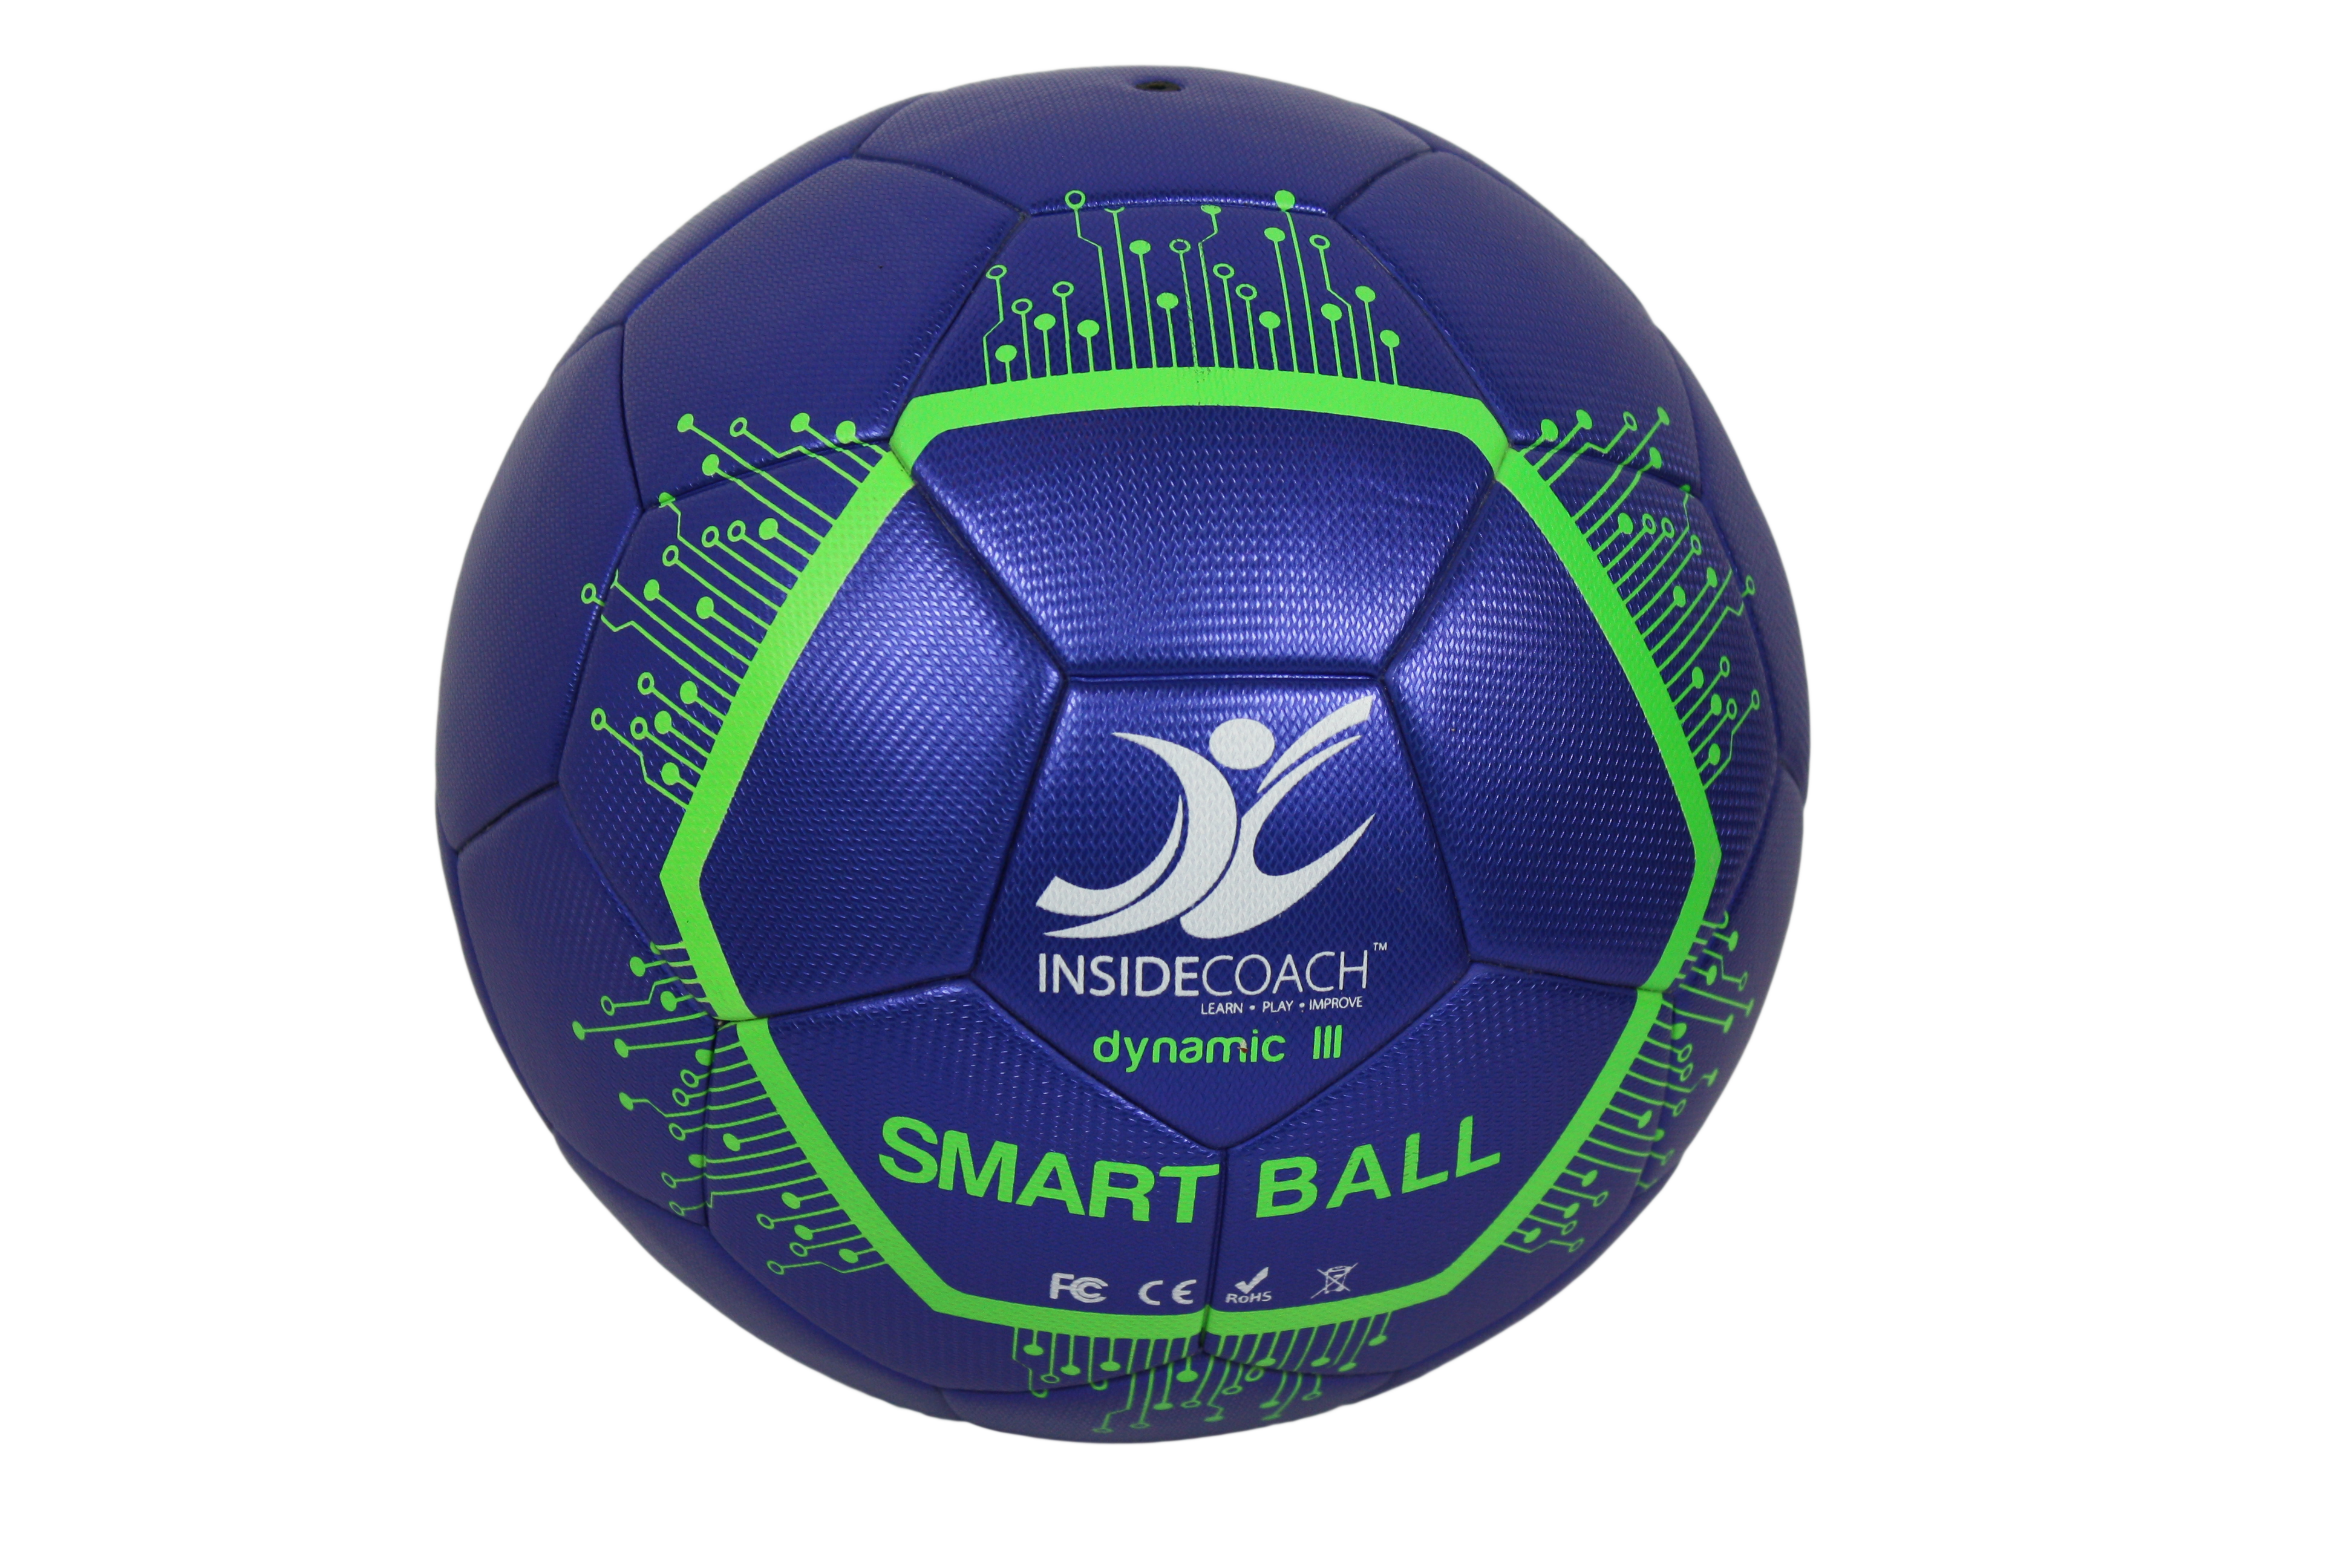 45d6cebc3 The worlds first and only smart soccer ball